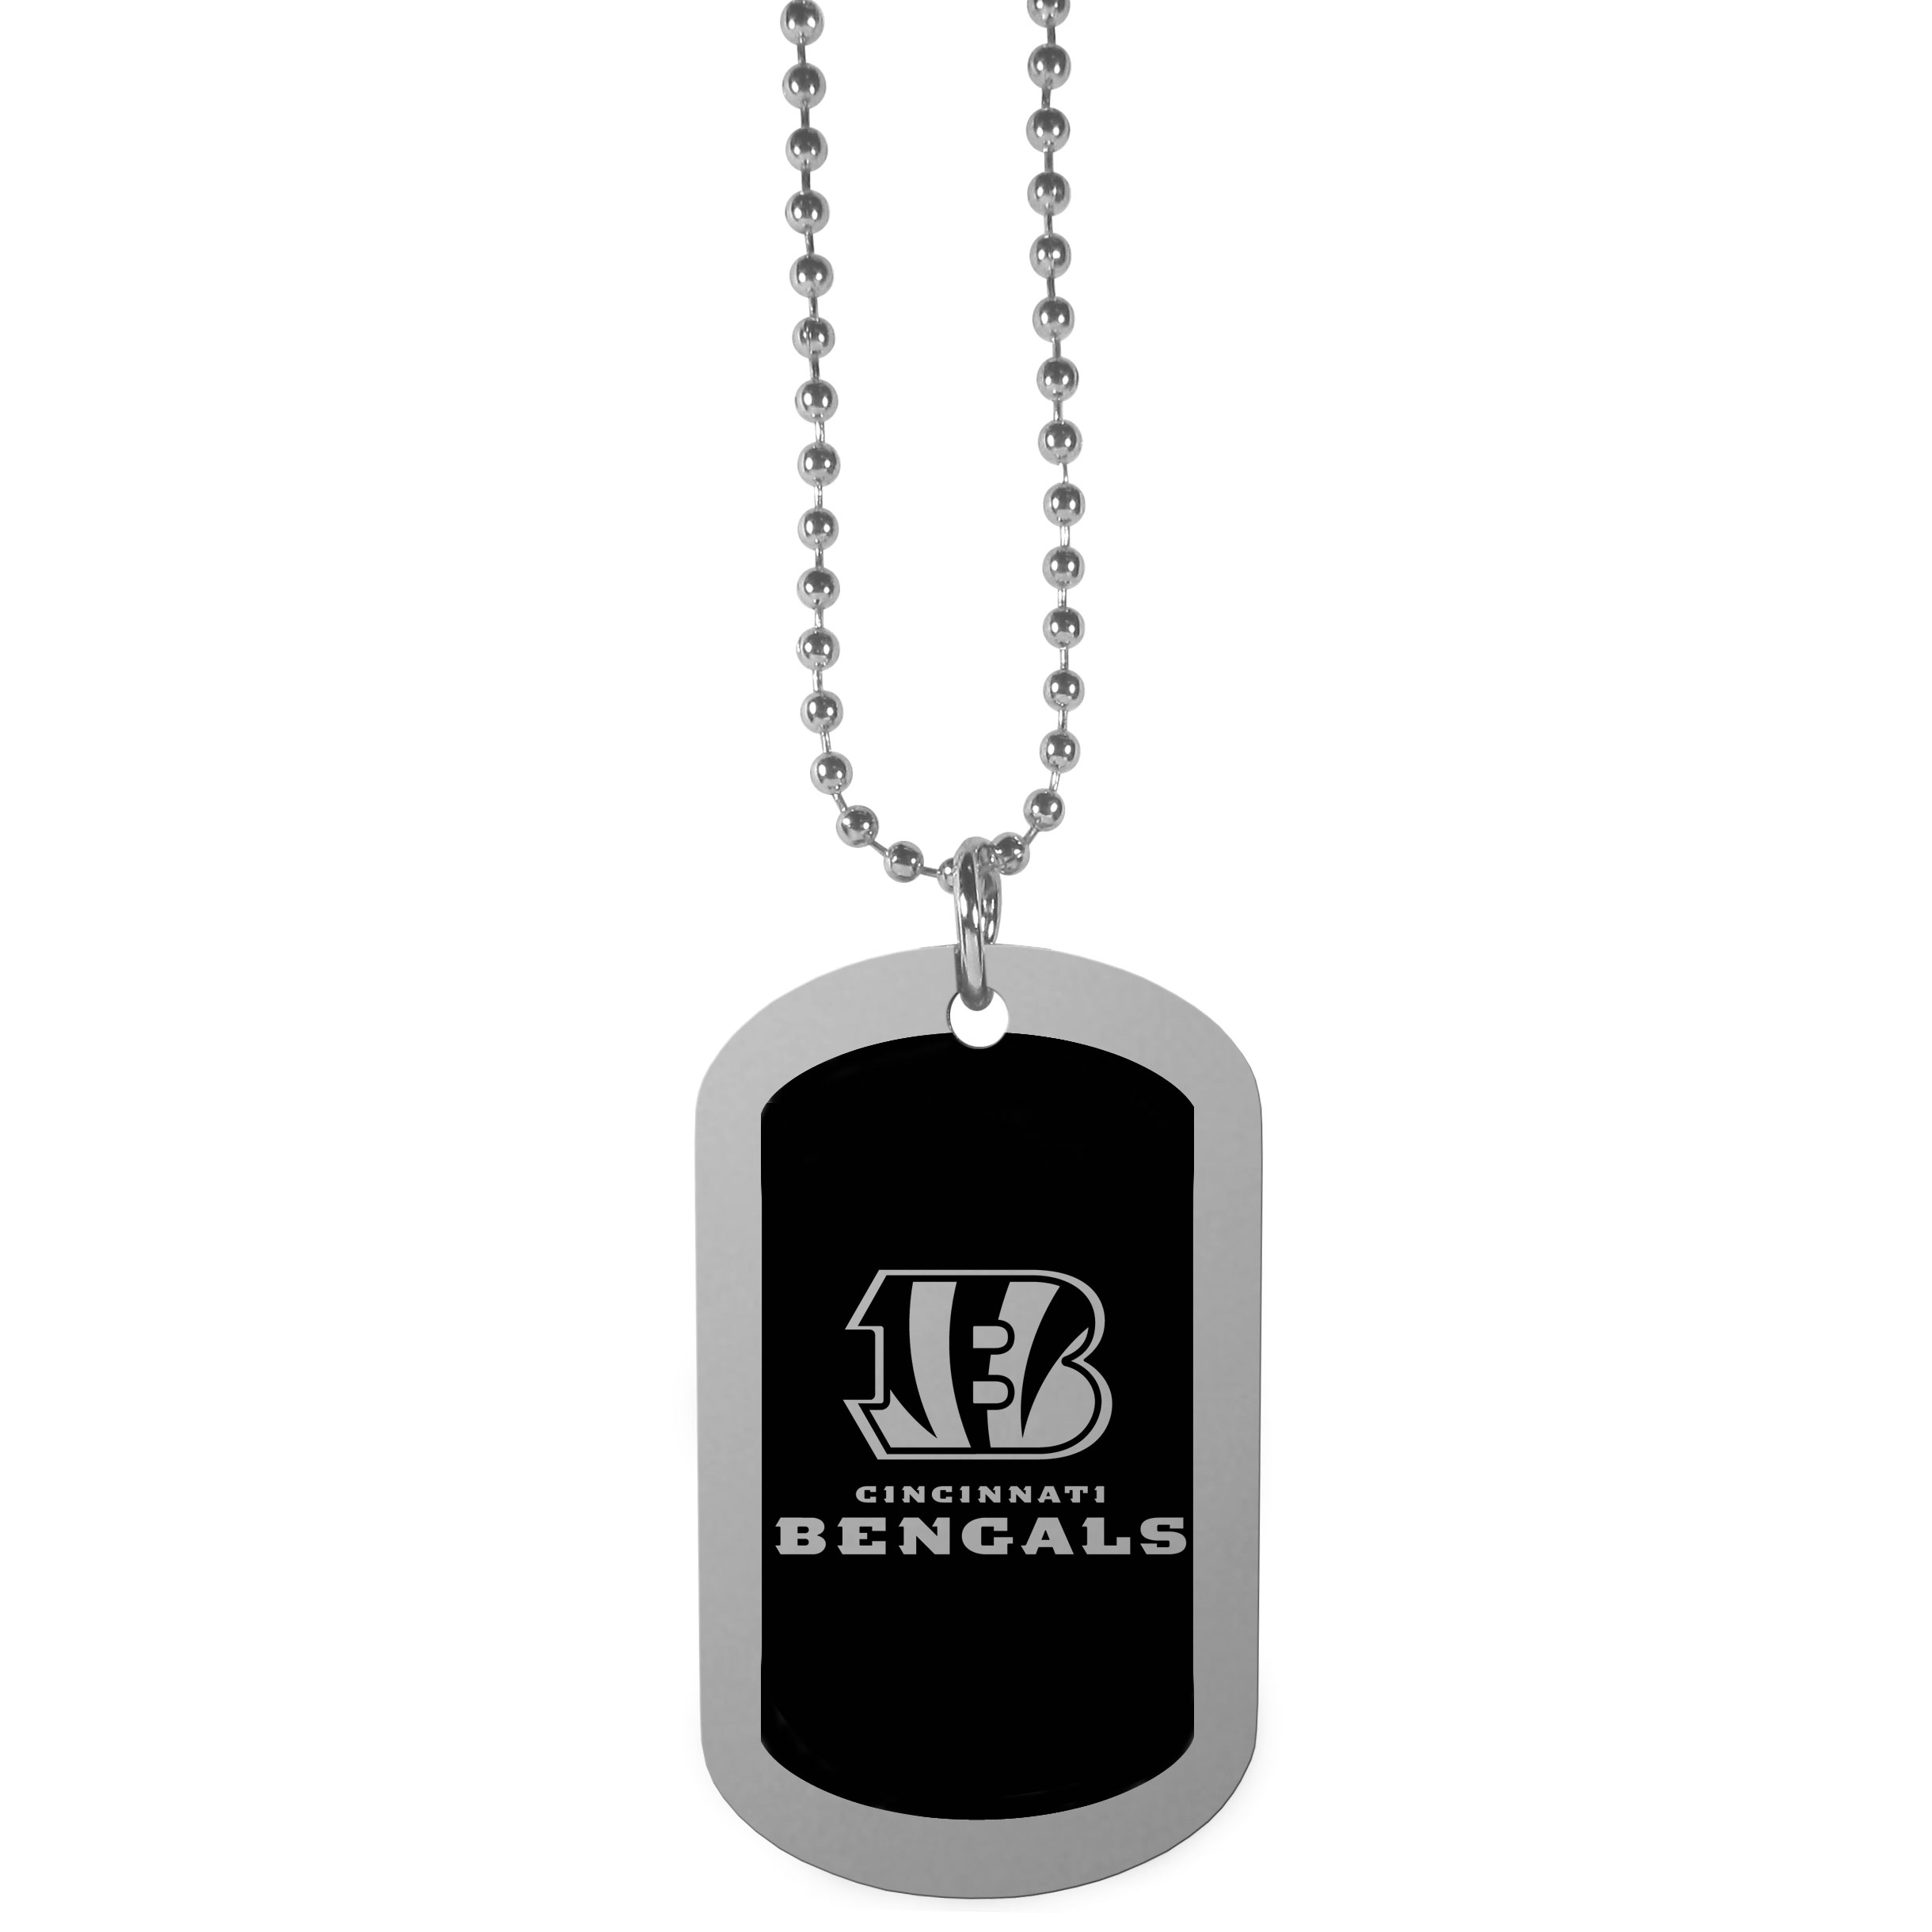 Cincinnati Bengals Chrome Tag Necklace - Dog tag necklaces are a fashion statement that is here to stay. The sporty version of the classic tag features a black printed over a high polish tag to create a bold and sporty look. The tag comes on a 26 inch ball chain with a ball and joint clasp. Any Cincinnati Bengals would be proud to wear this attractive fashion accessory.